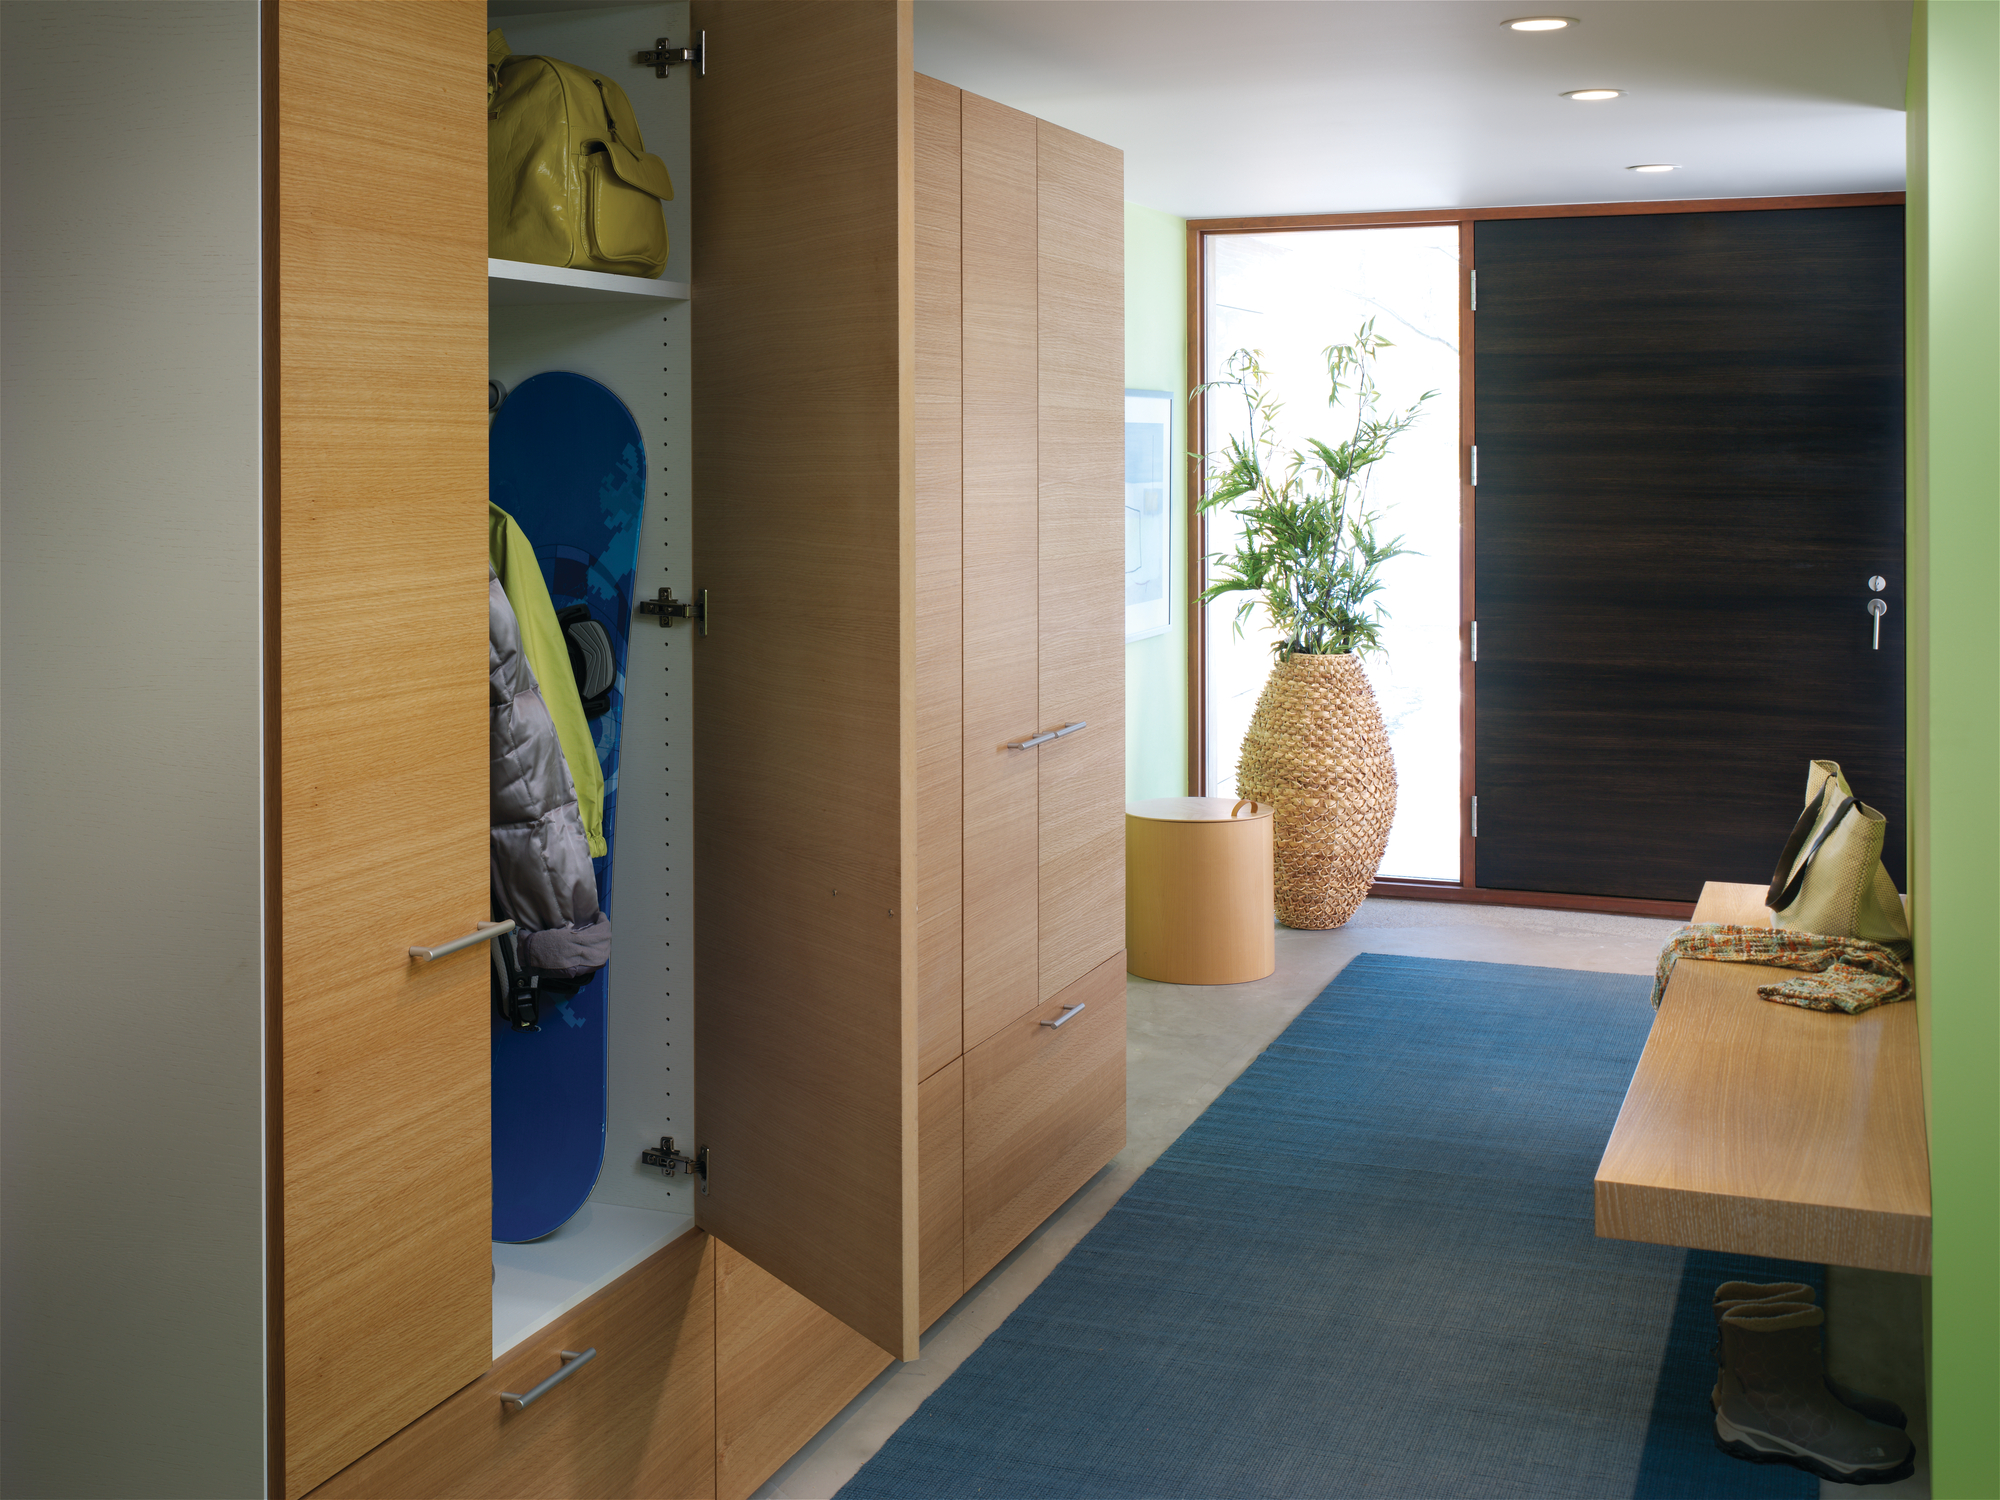 10 Front Entry Organization Hacks That Will Make Life Easier